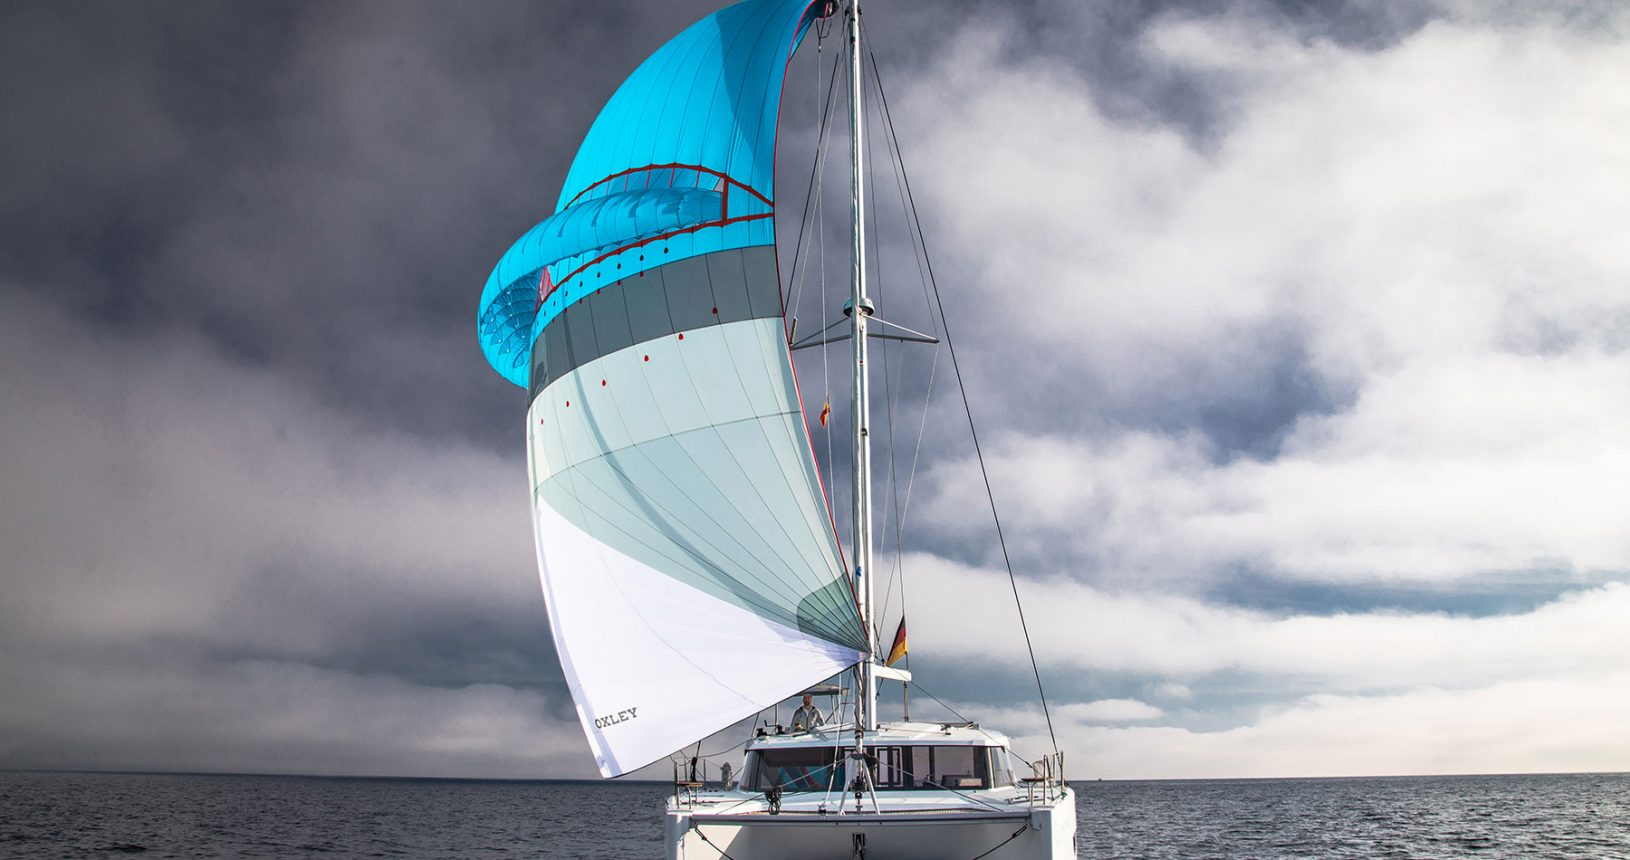 self stabilizing sail